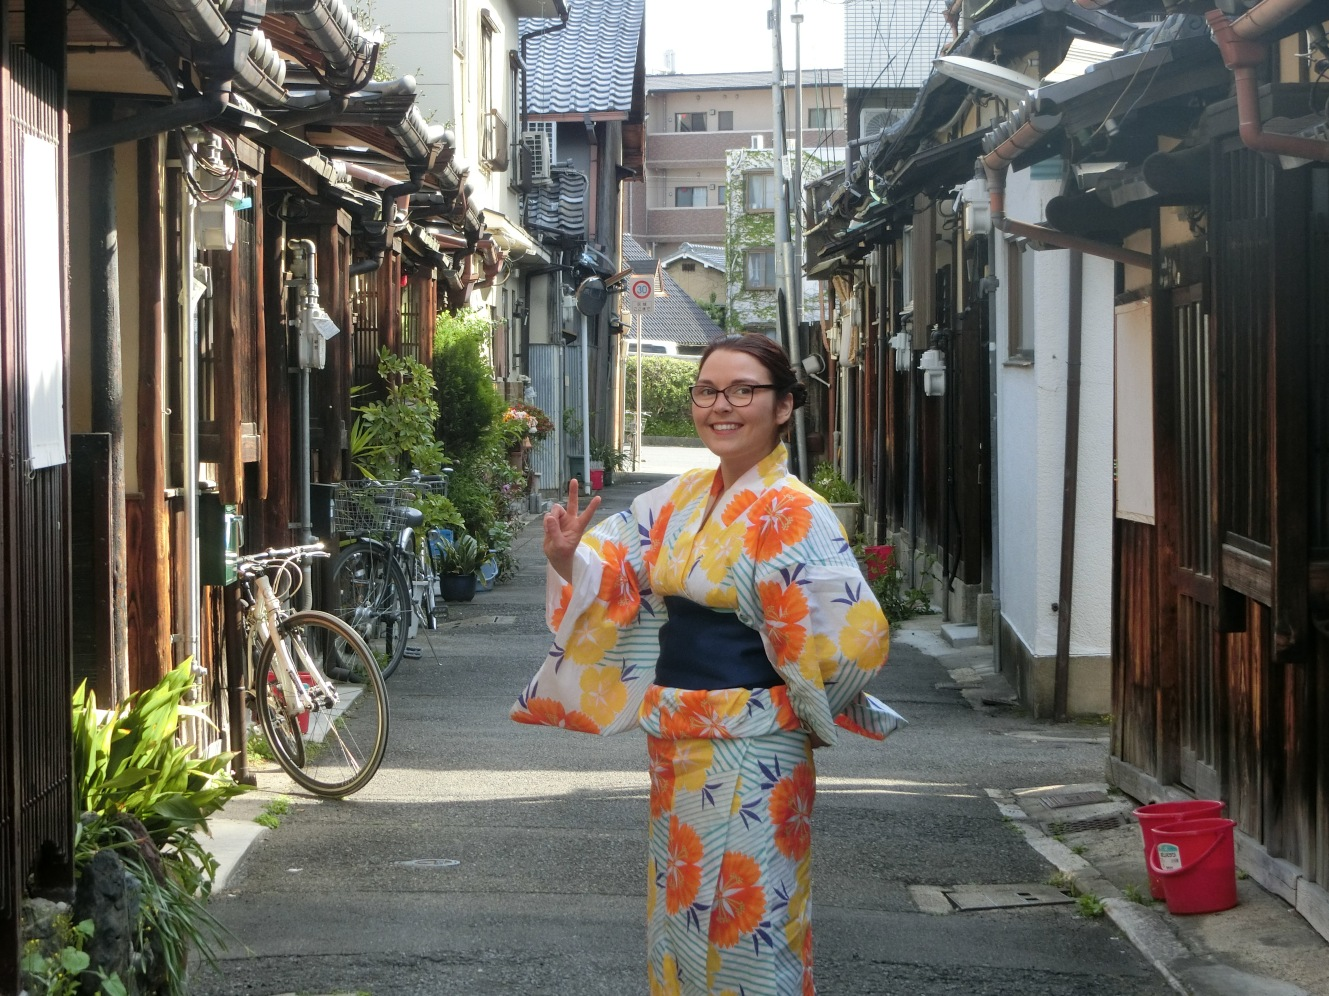 avril japon pvt whv kyoto yukata expatriation